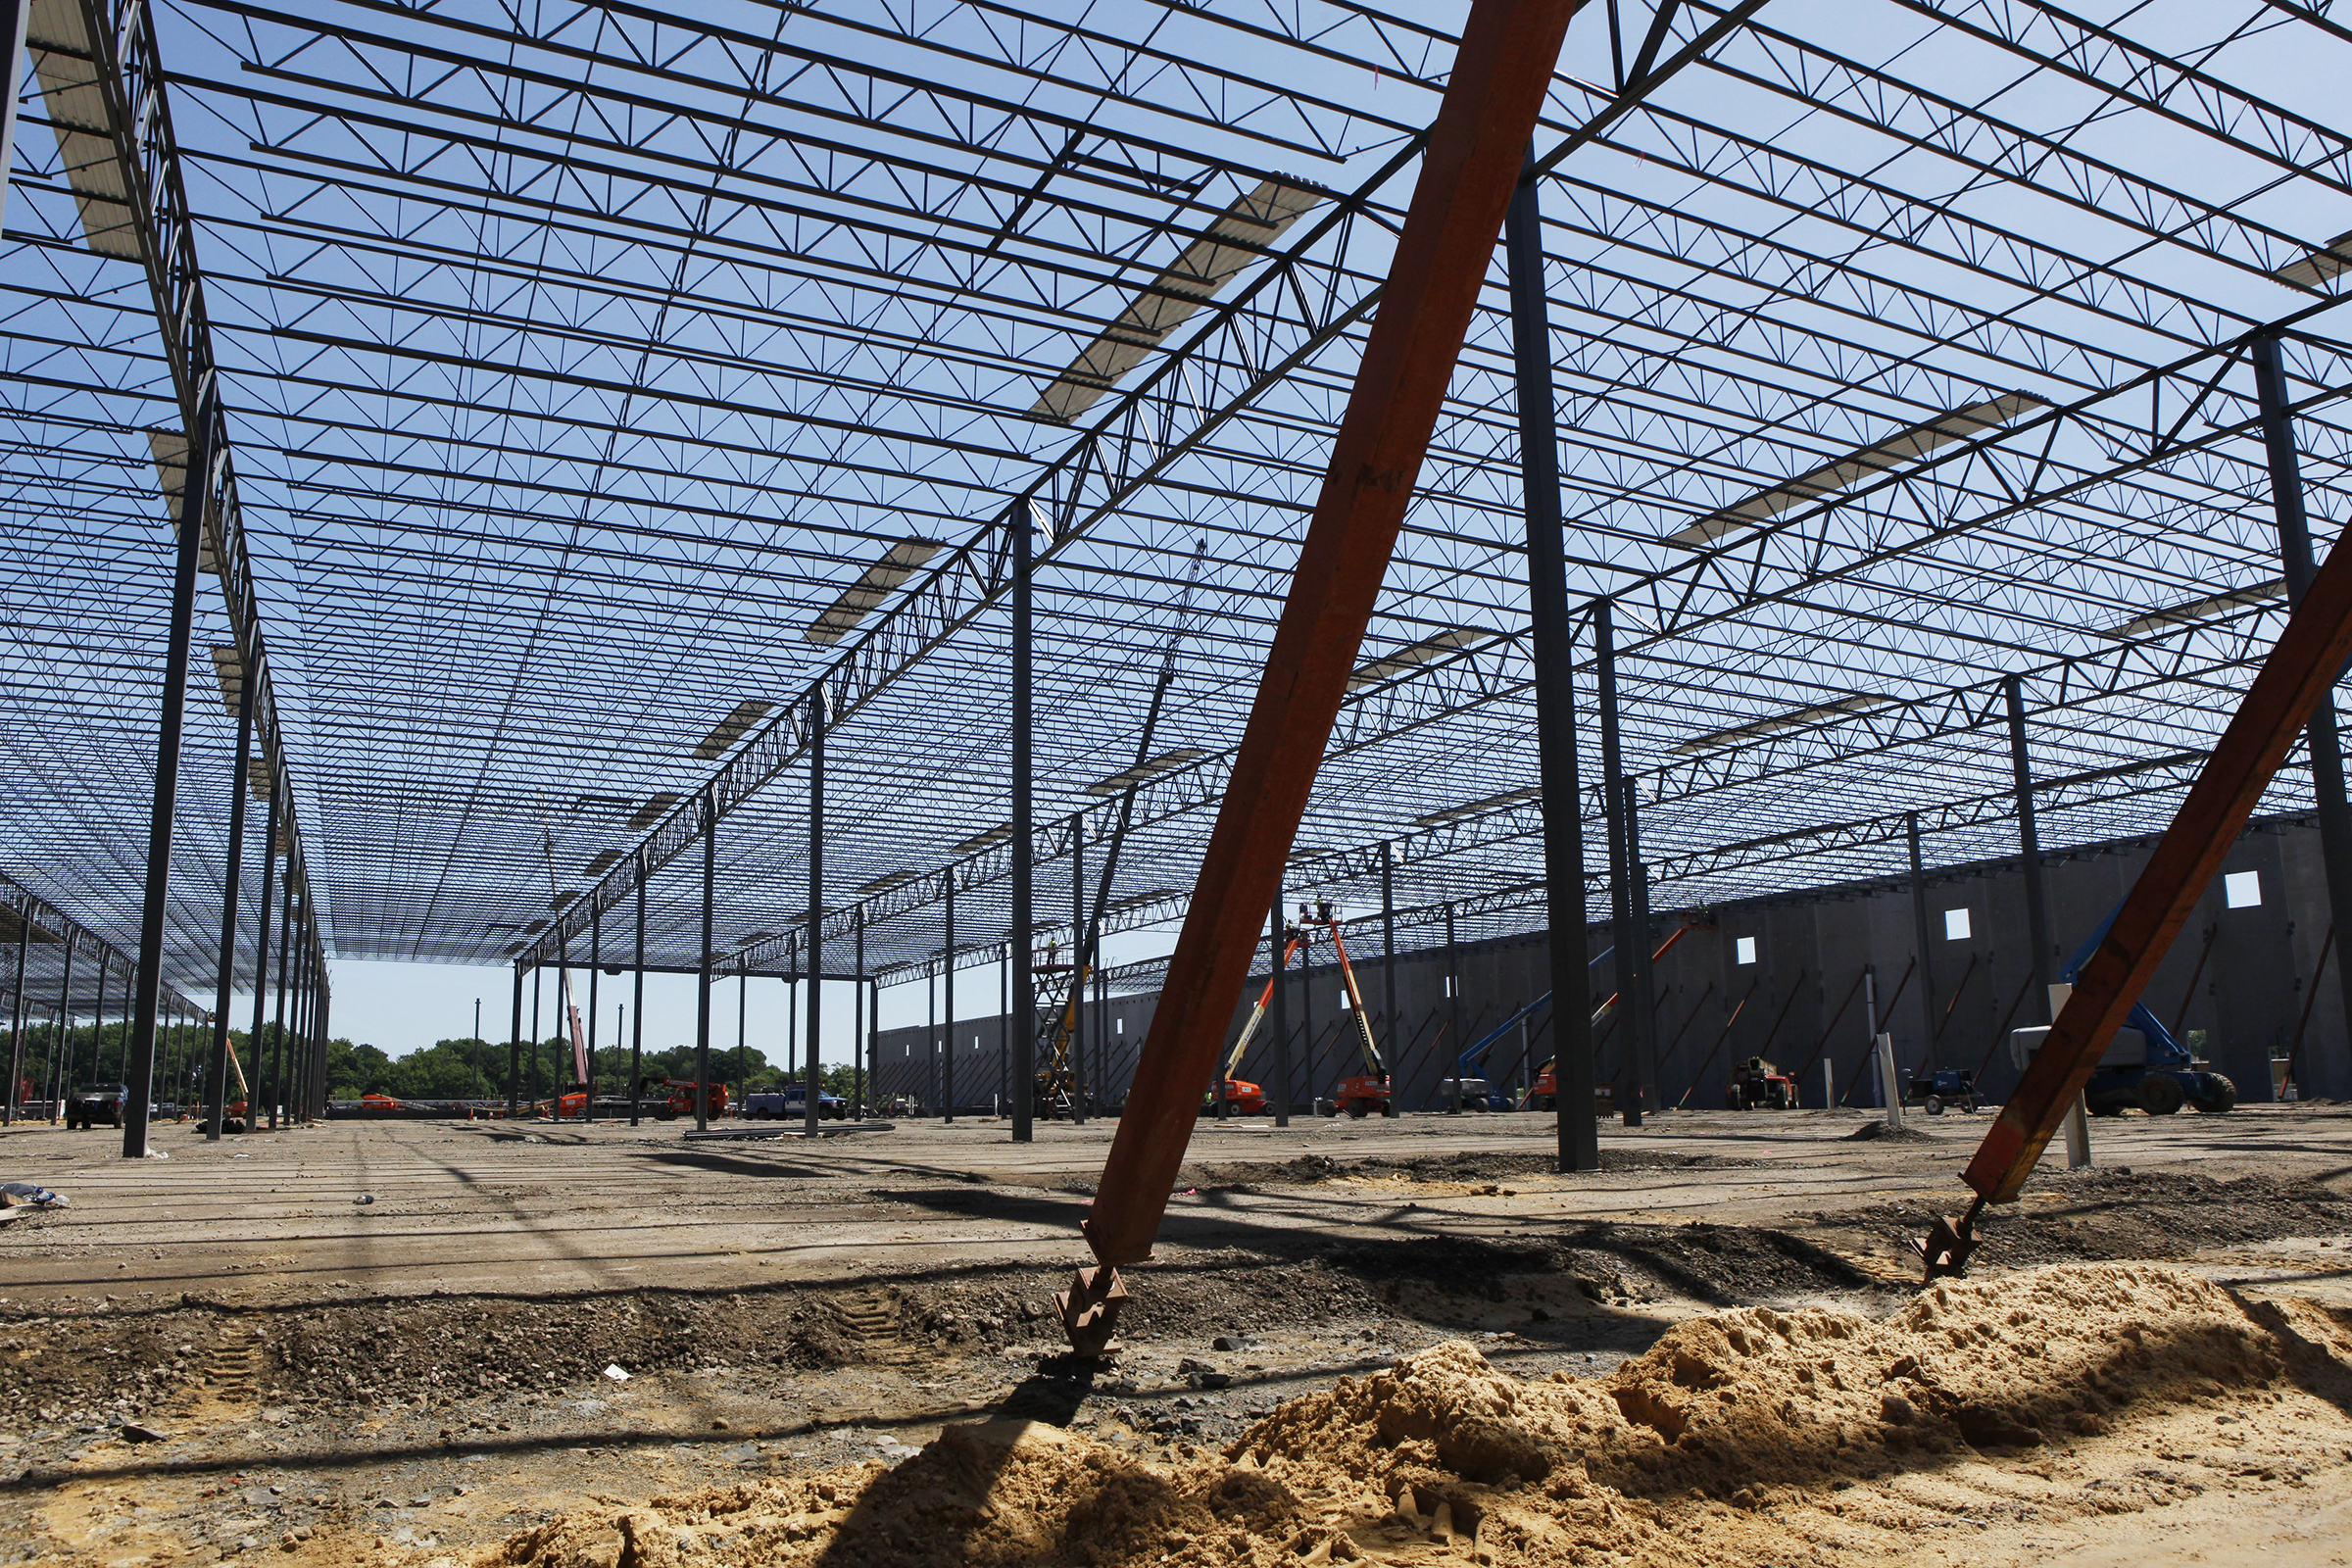 Construction continues on the new 1 million square foot Amazon distribution center in Burlington, NJ.